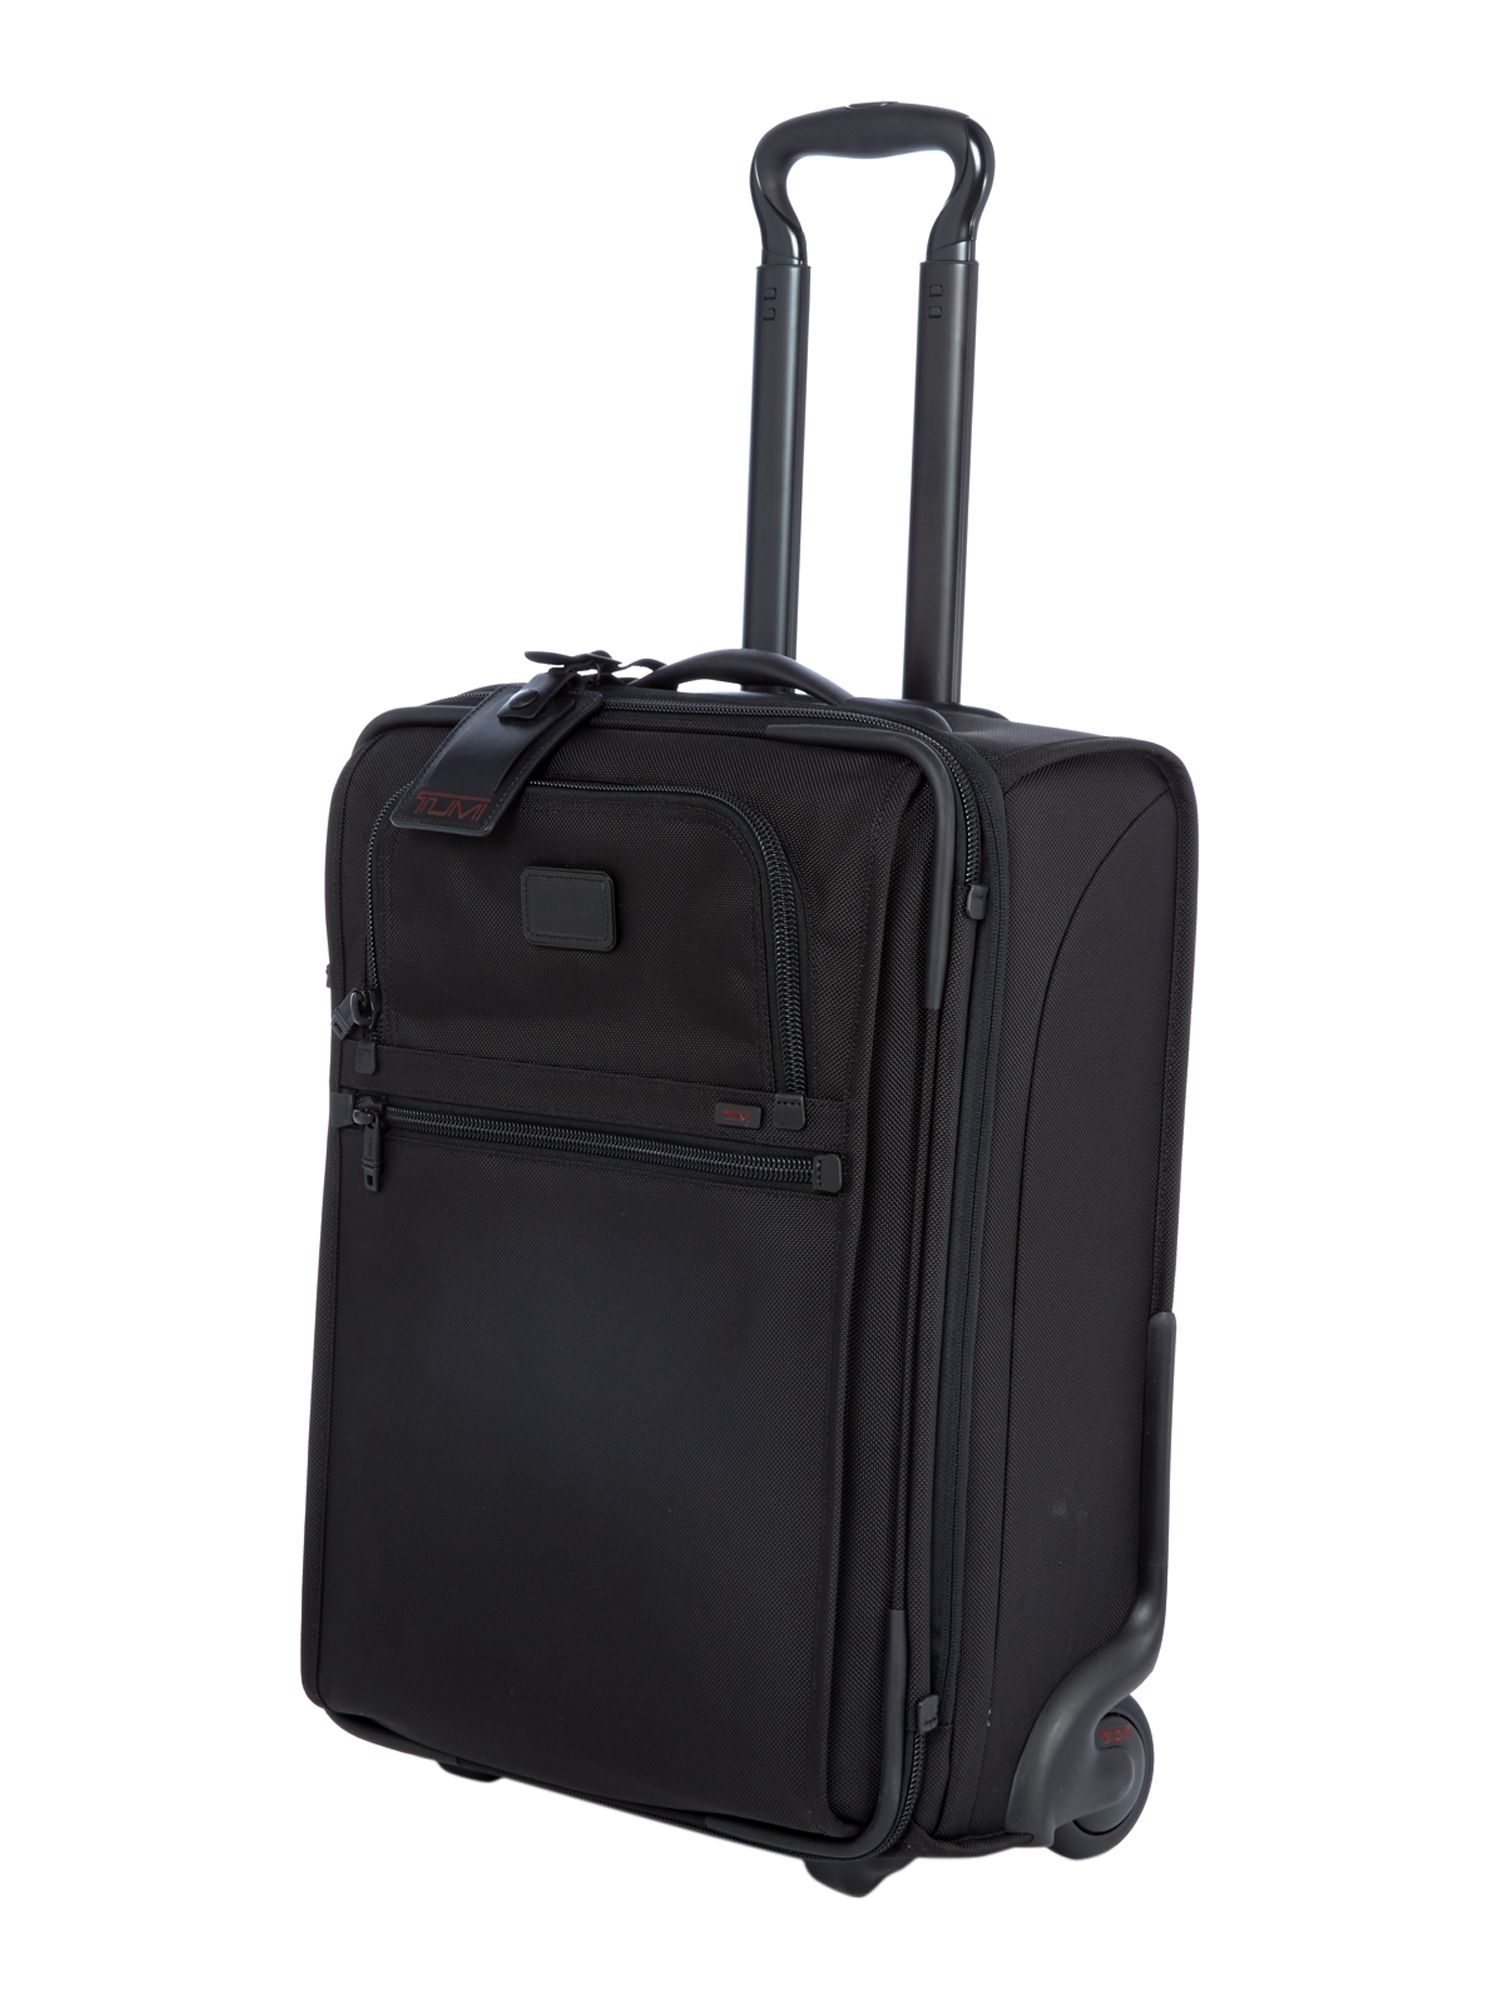 Lightweight slim international 2 wheel cabin case